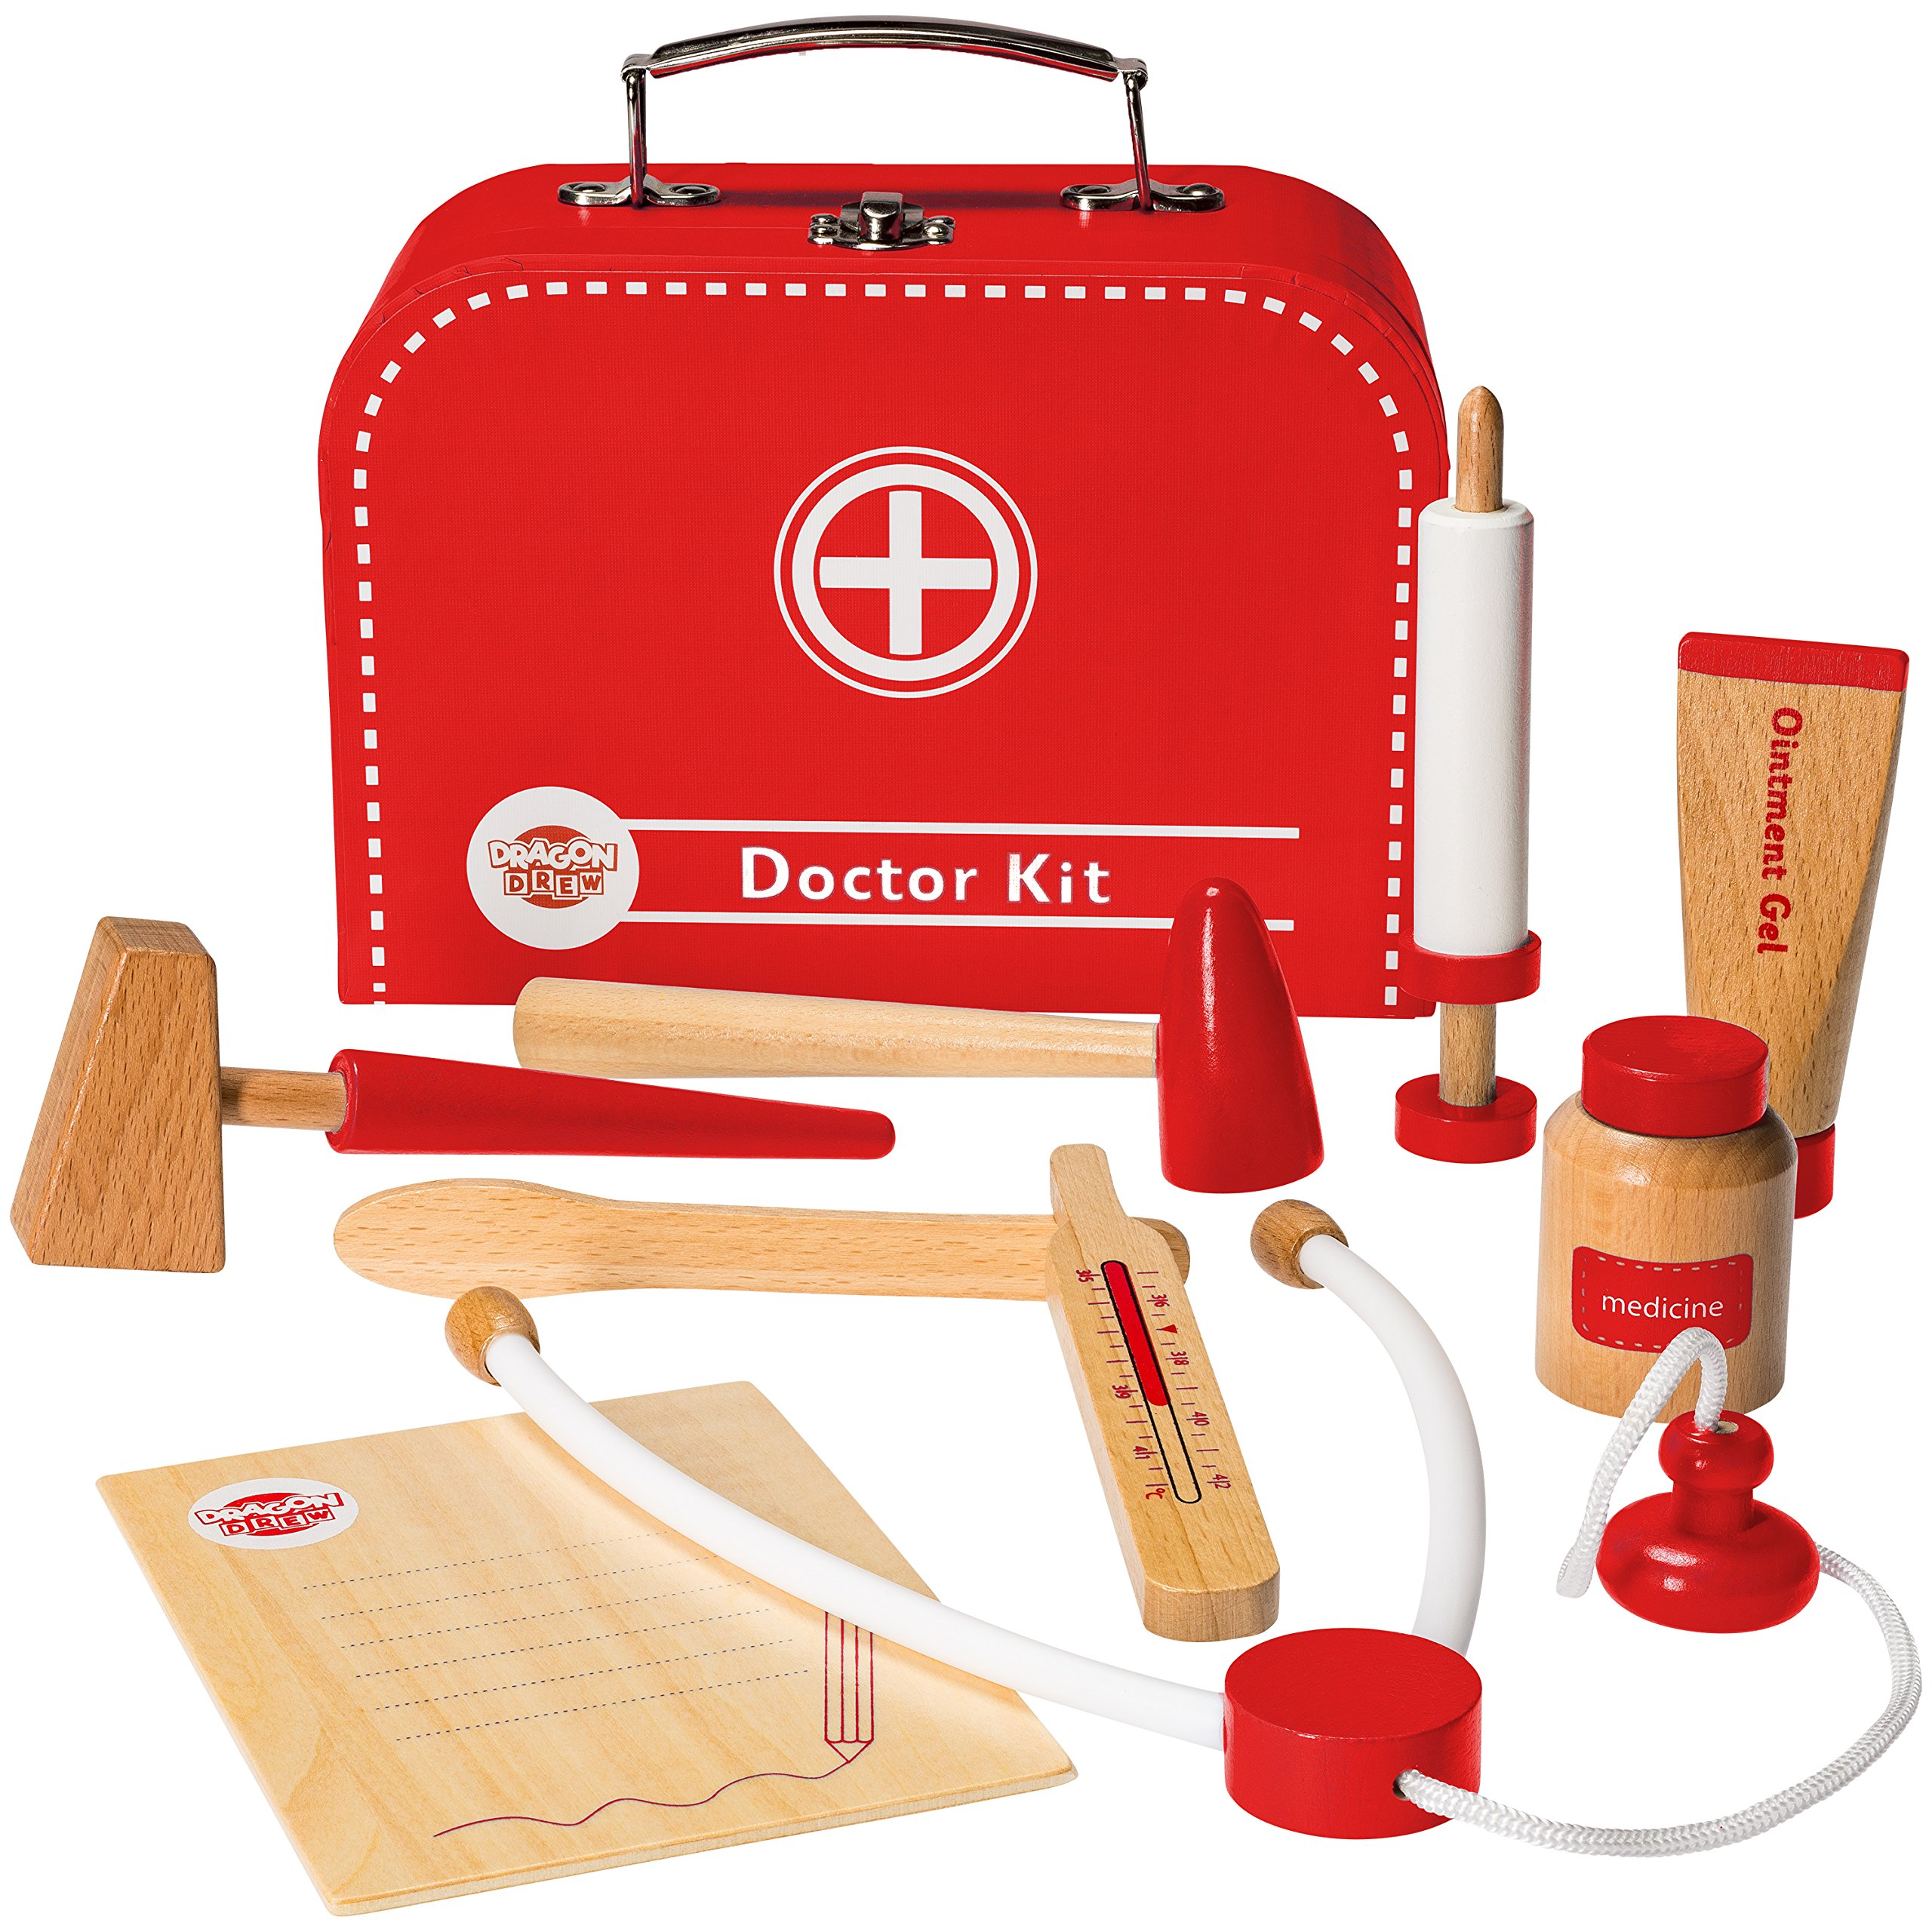 Dragon Drew Wooden Doctor Kit for Kids, Pretend Doctor Kit for Kids, Medical Kit for Toddler, Pretend and Play Tools (10 PC Set) by Dragon Drew